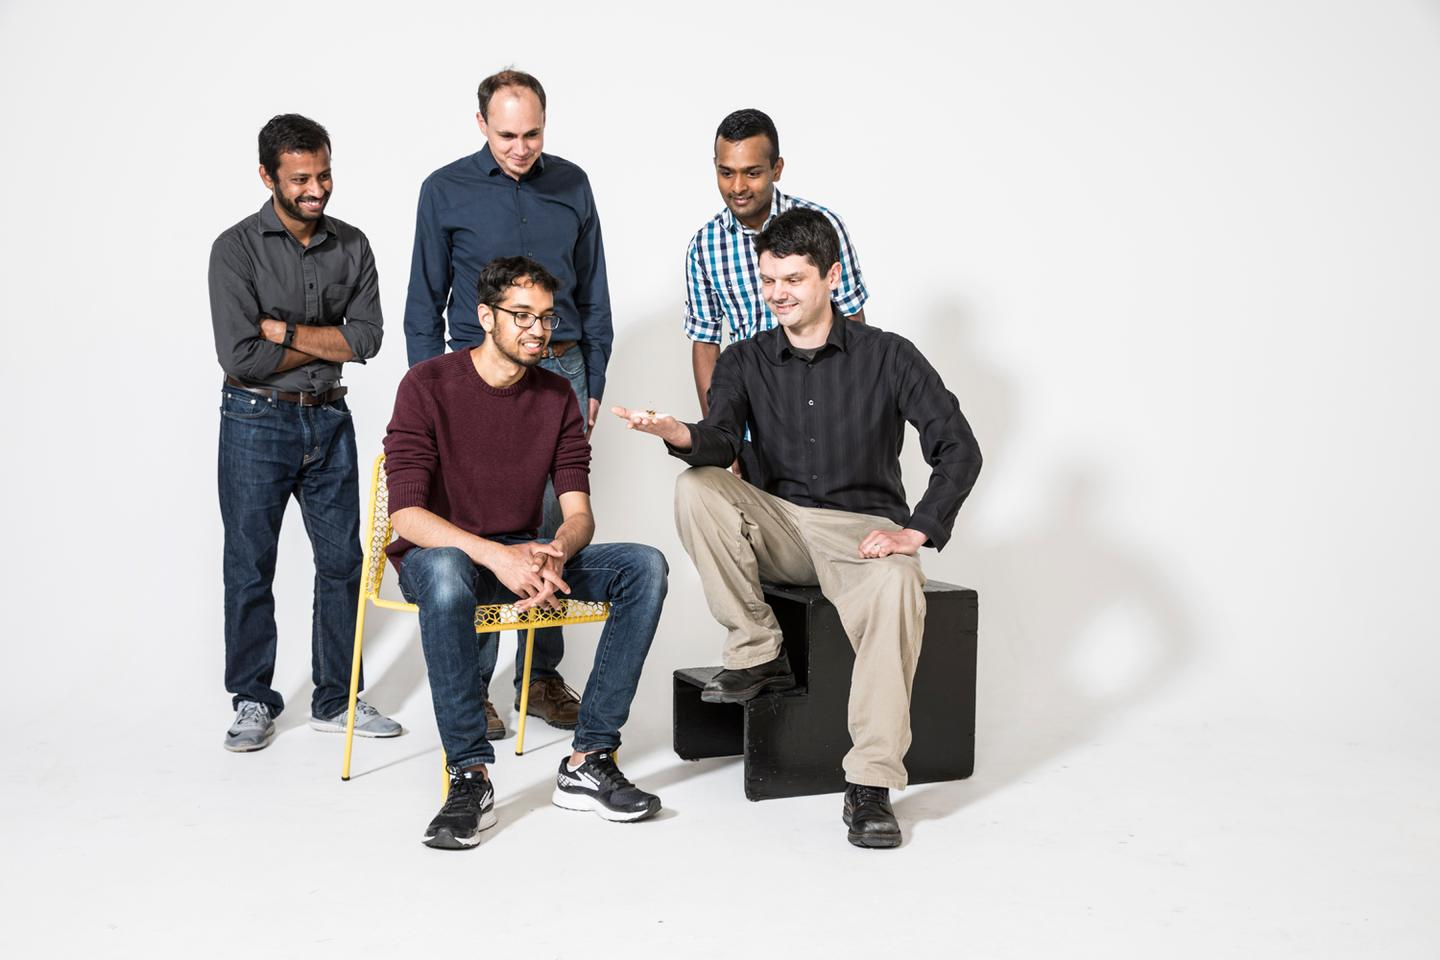 The RoboFly team – Back row (left to right): Yogesh Chukewad, Sawyer Fuller, Shyam Gollakota; Front row: Vikram Iyer, Johannes James